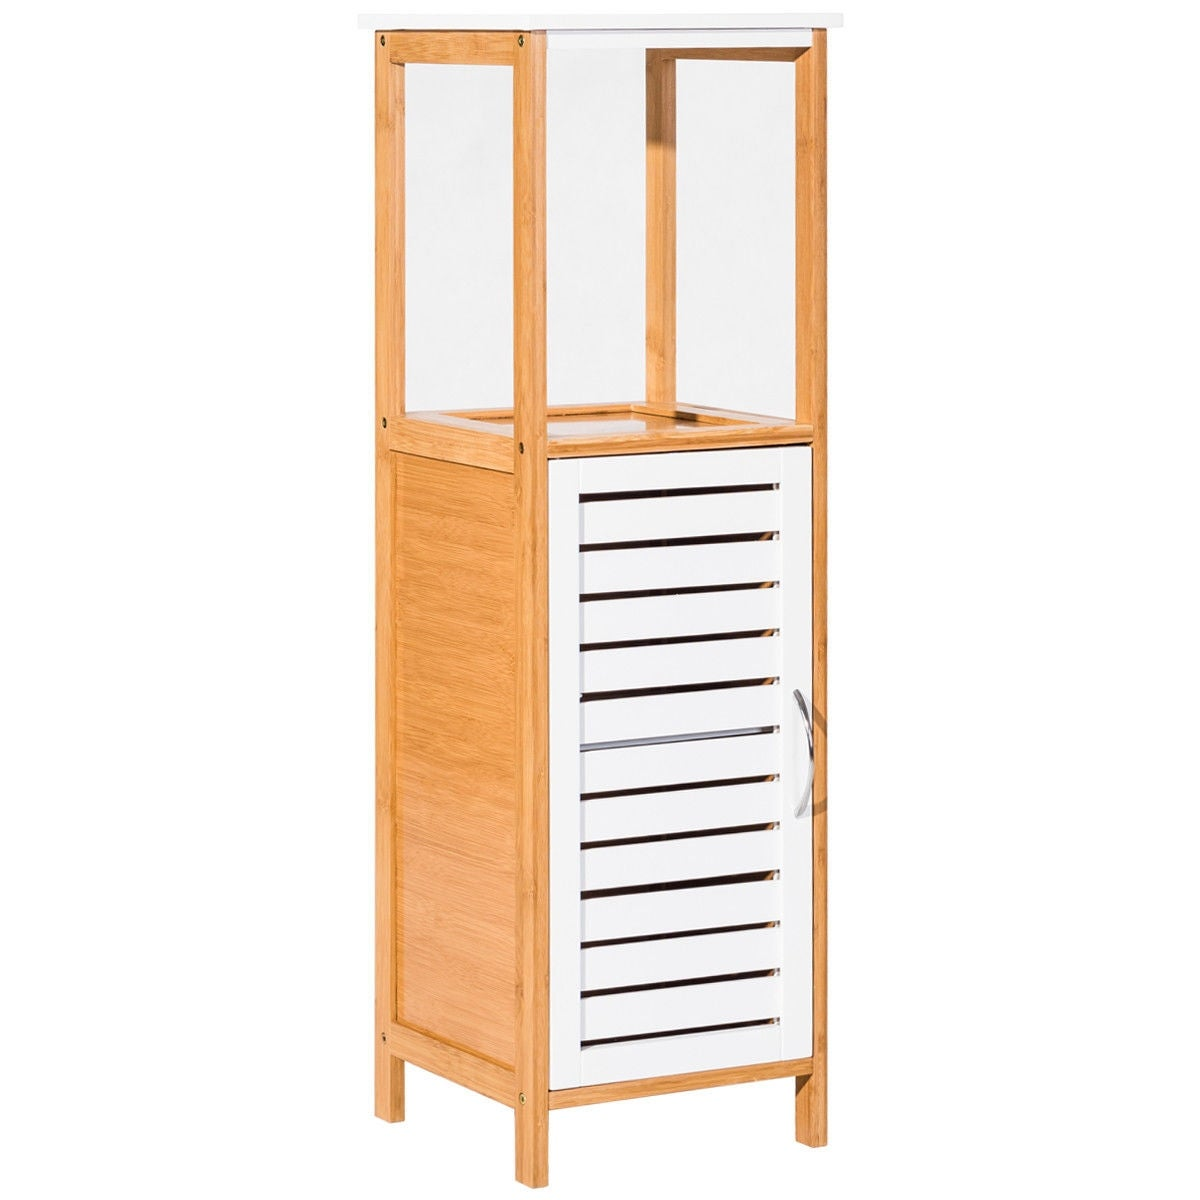 Costway Bamboo Bathroom Storage Rack Floor Cabinet Free Standing Shelf Towel Organizer On Shipping Today 21009971